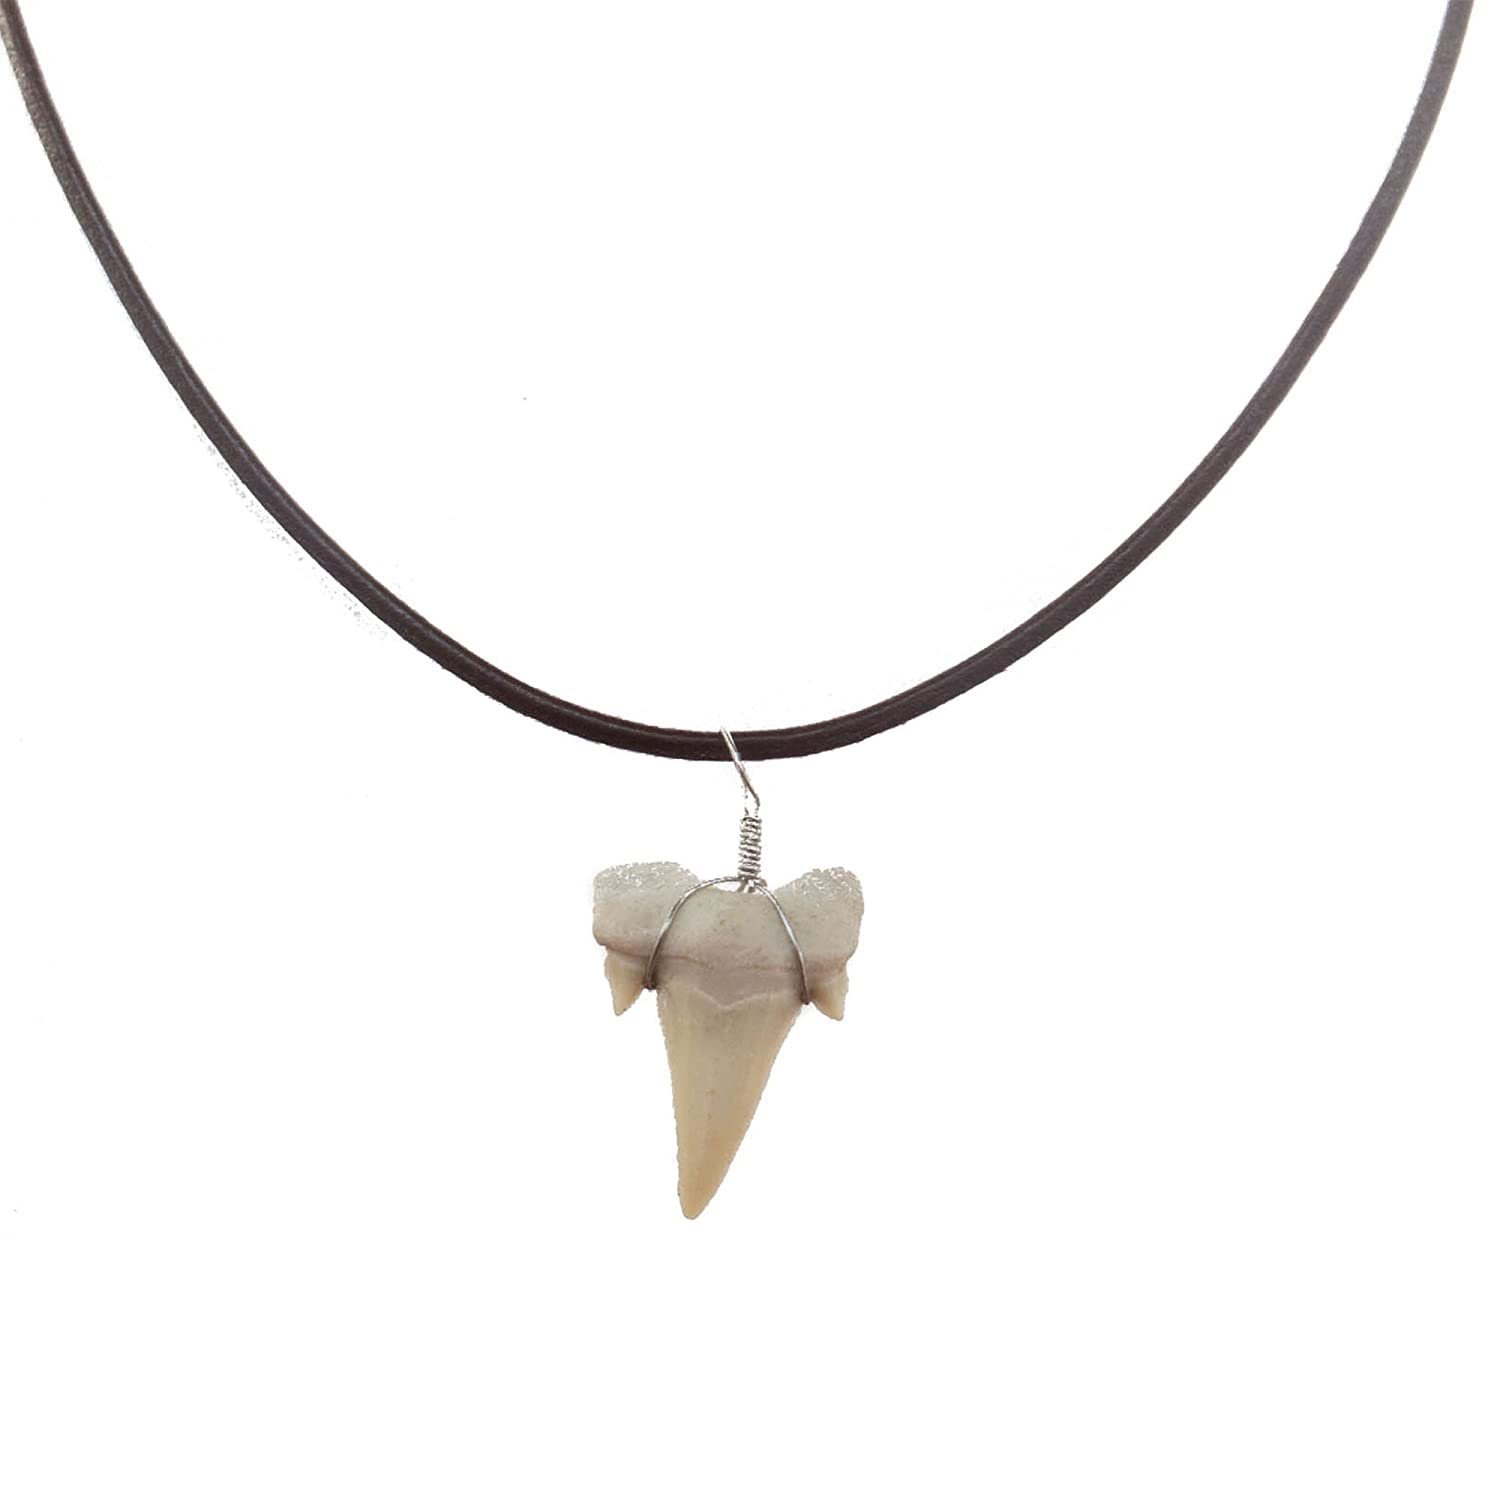 Shark Tooth Necklace for Men Boys Teens Kids - Genuine Fossil Pendant on Stylish Leather Necklace - Cool Men's Classic Surfer Style Necklaces - Novelty Fashion Jewelry for Men - Summer Accessories